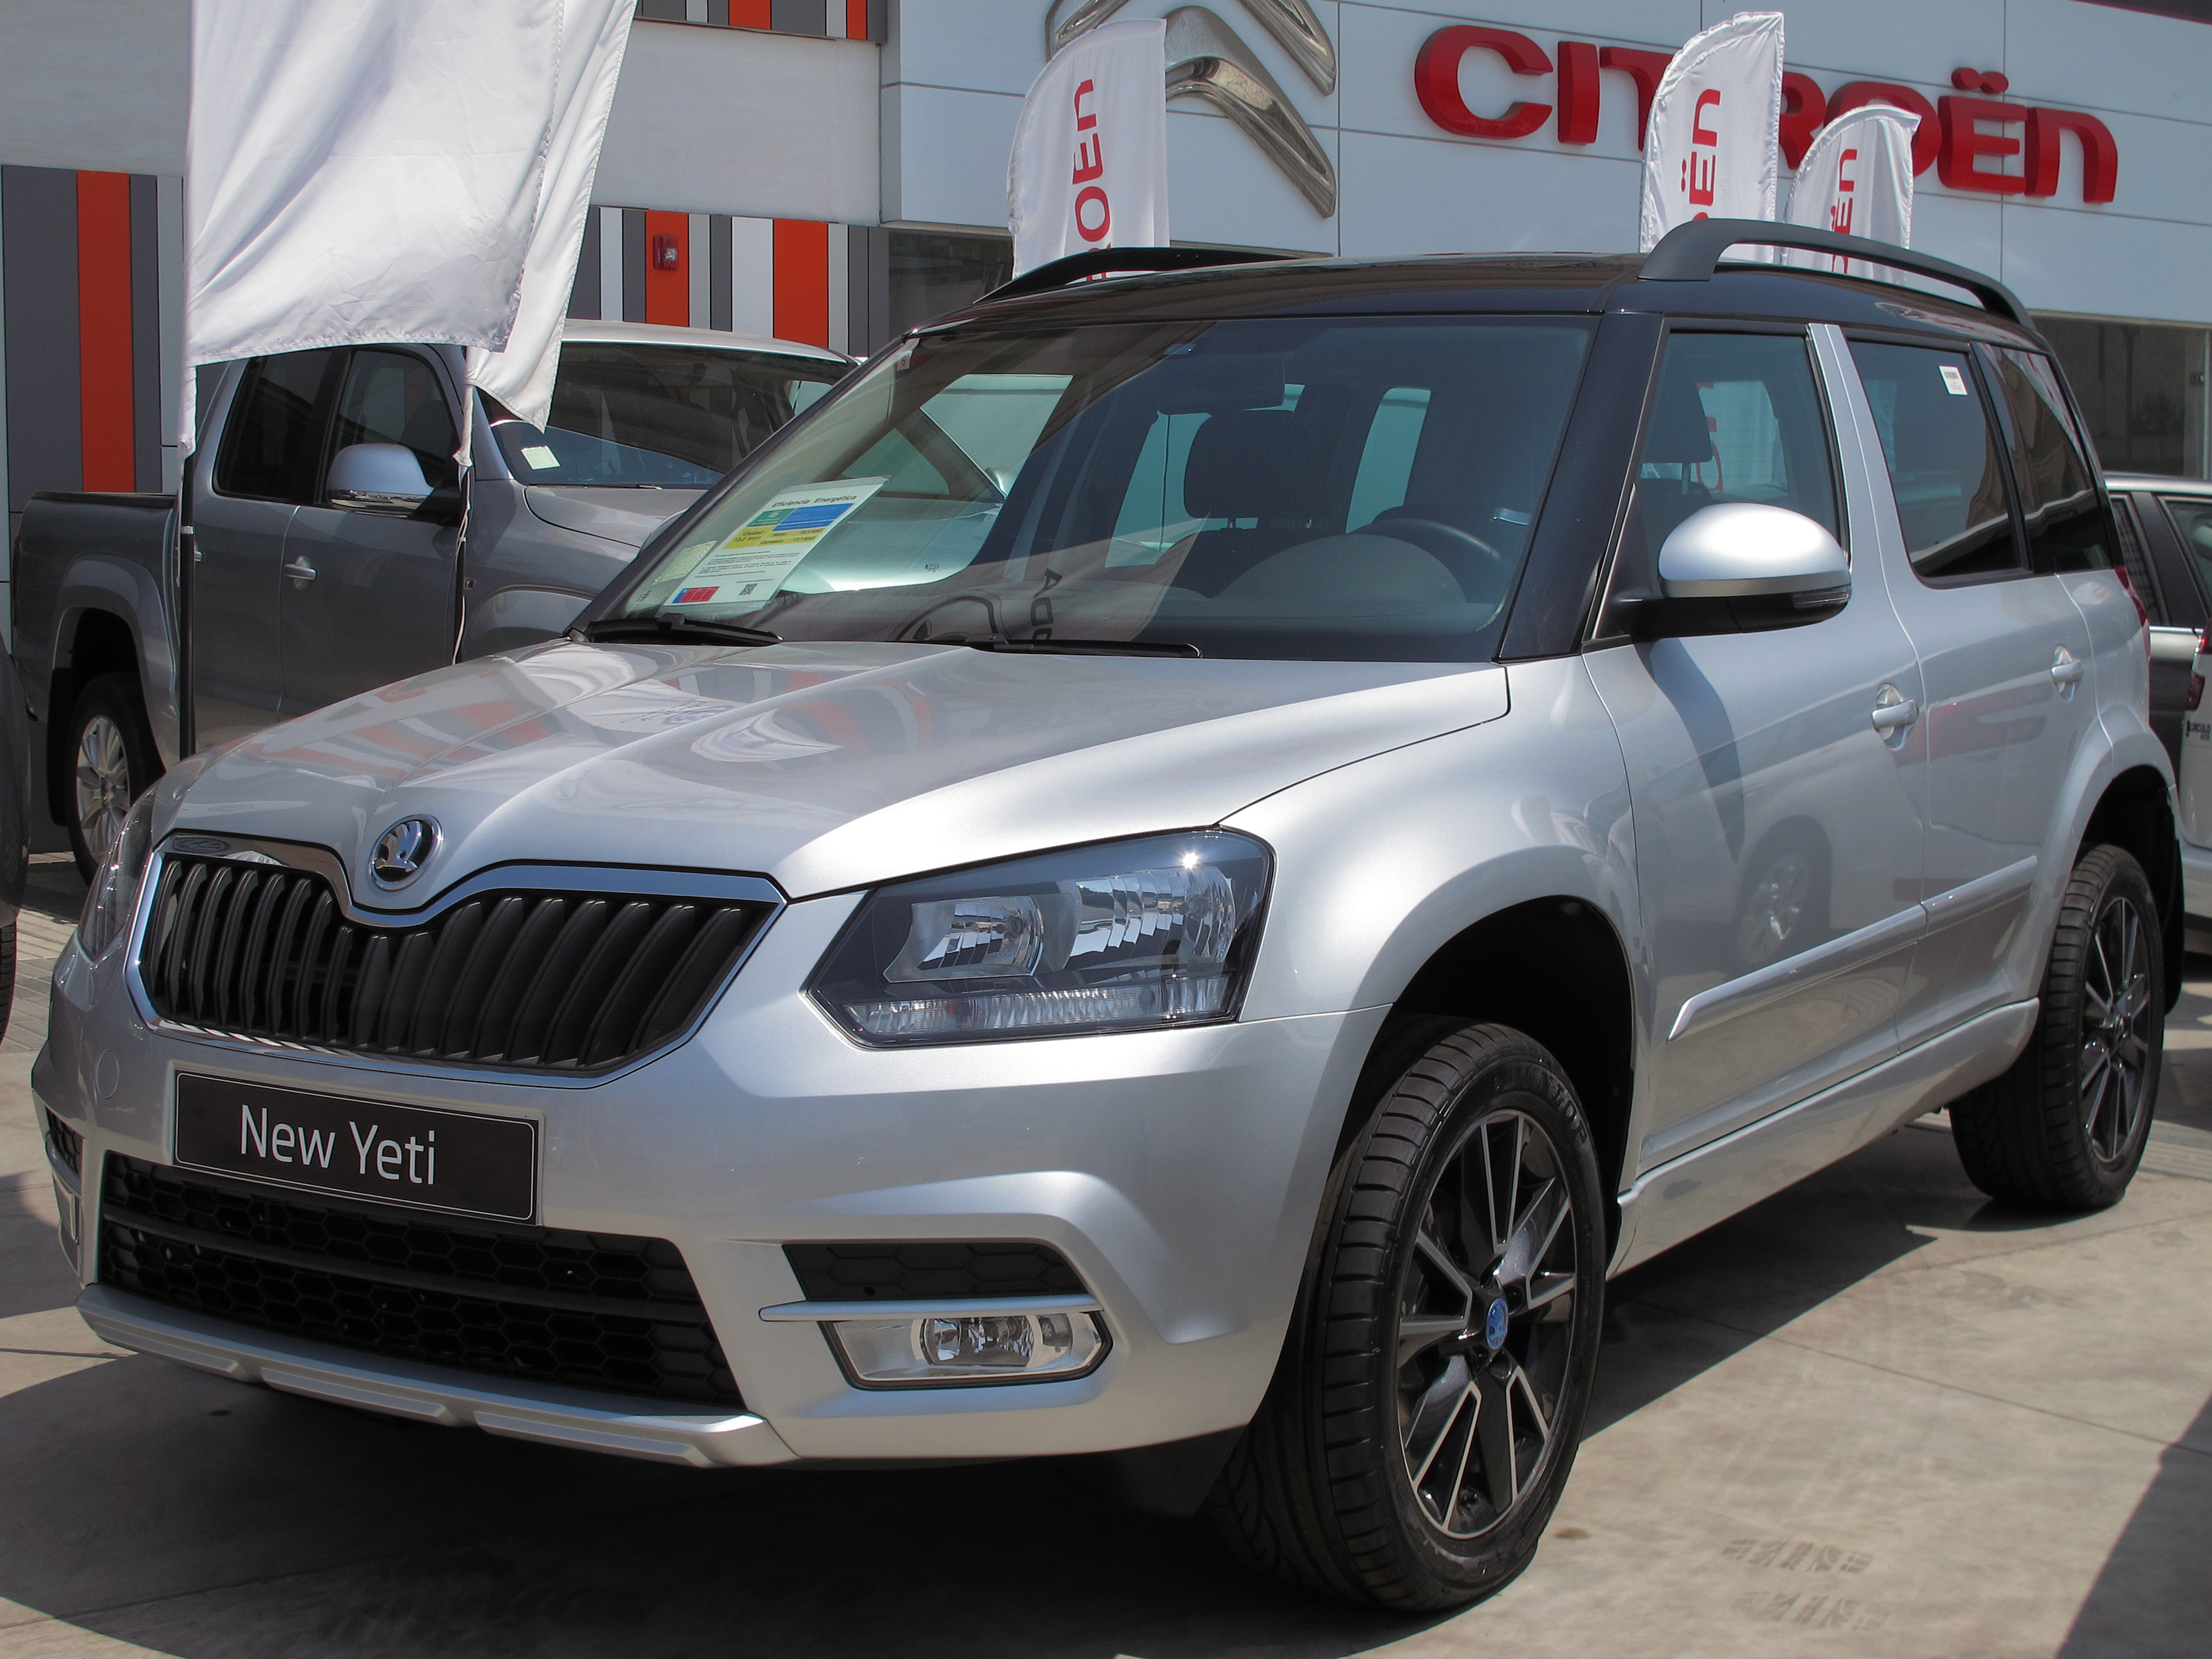 skoda yeti 2 0 tdi elegance 4x4 2015 16698183612 jpg. Black Bedroom Furniture Sets. Home Design Ideas